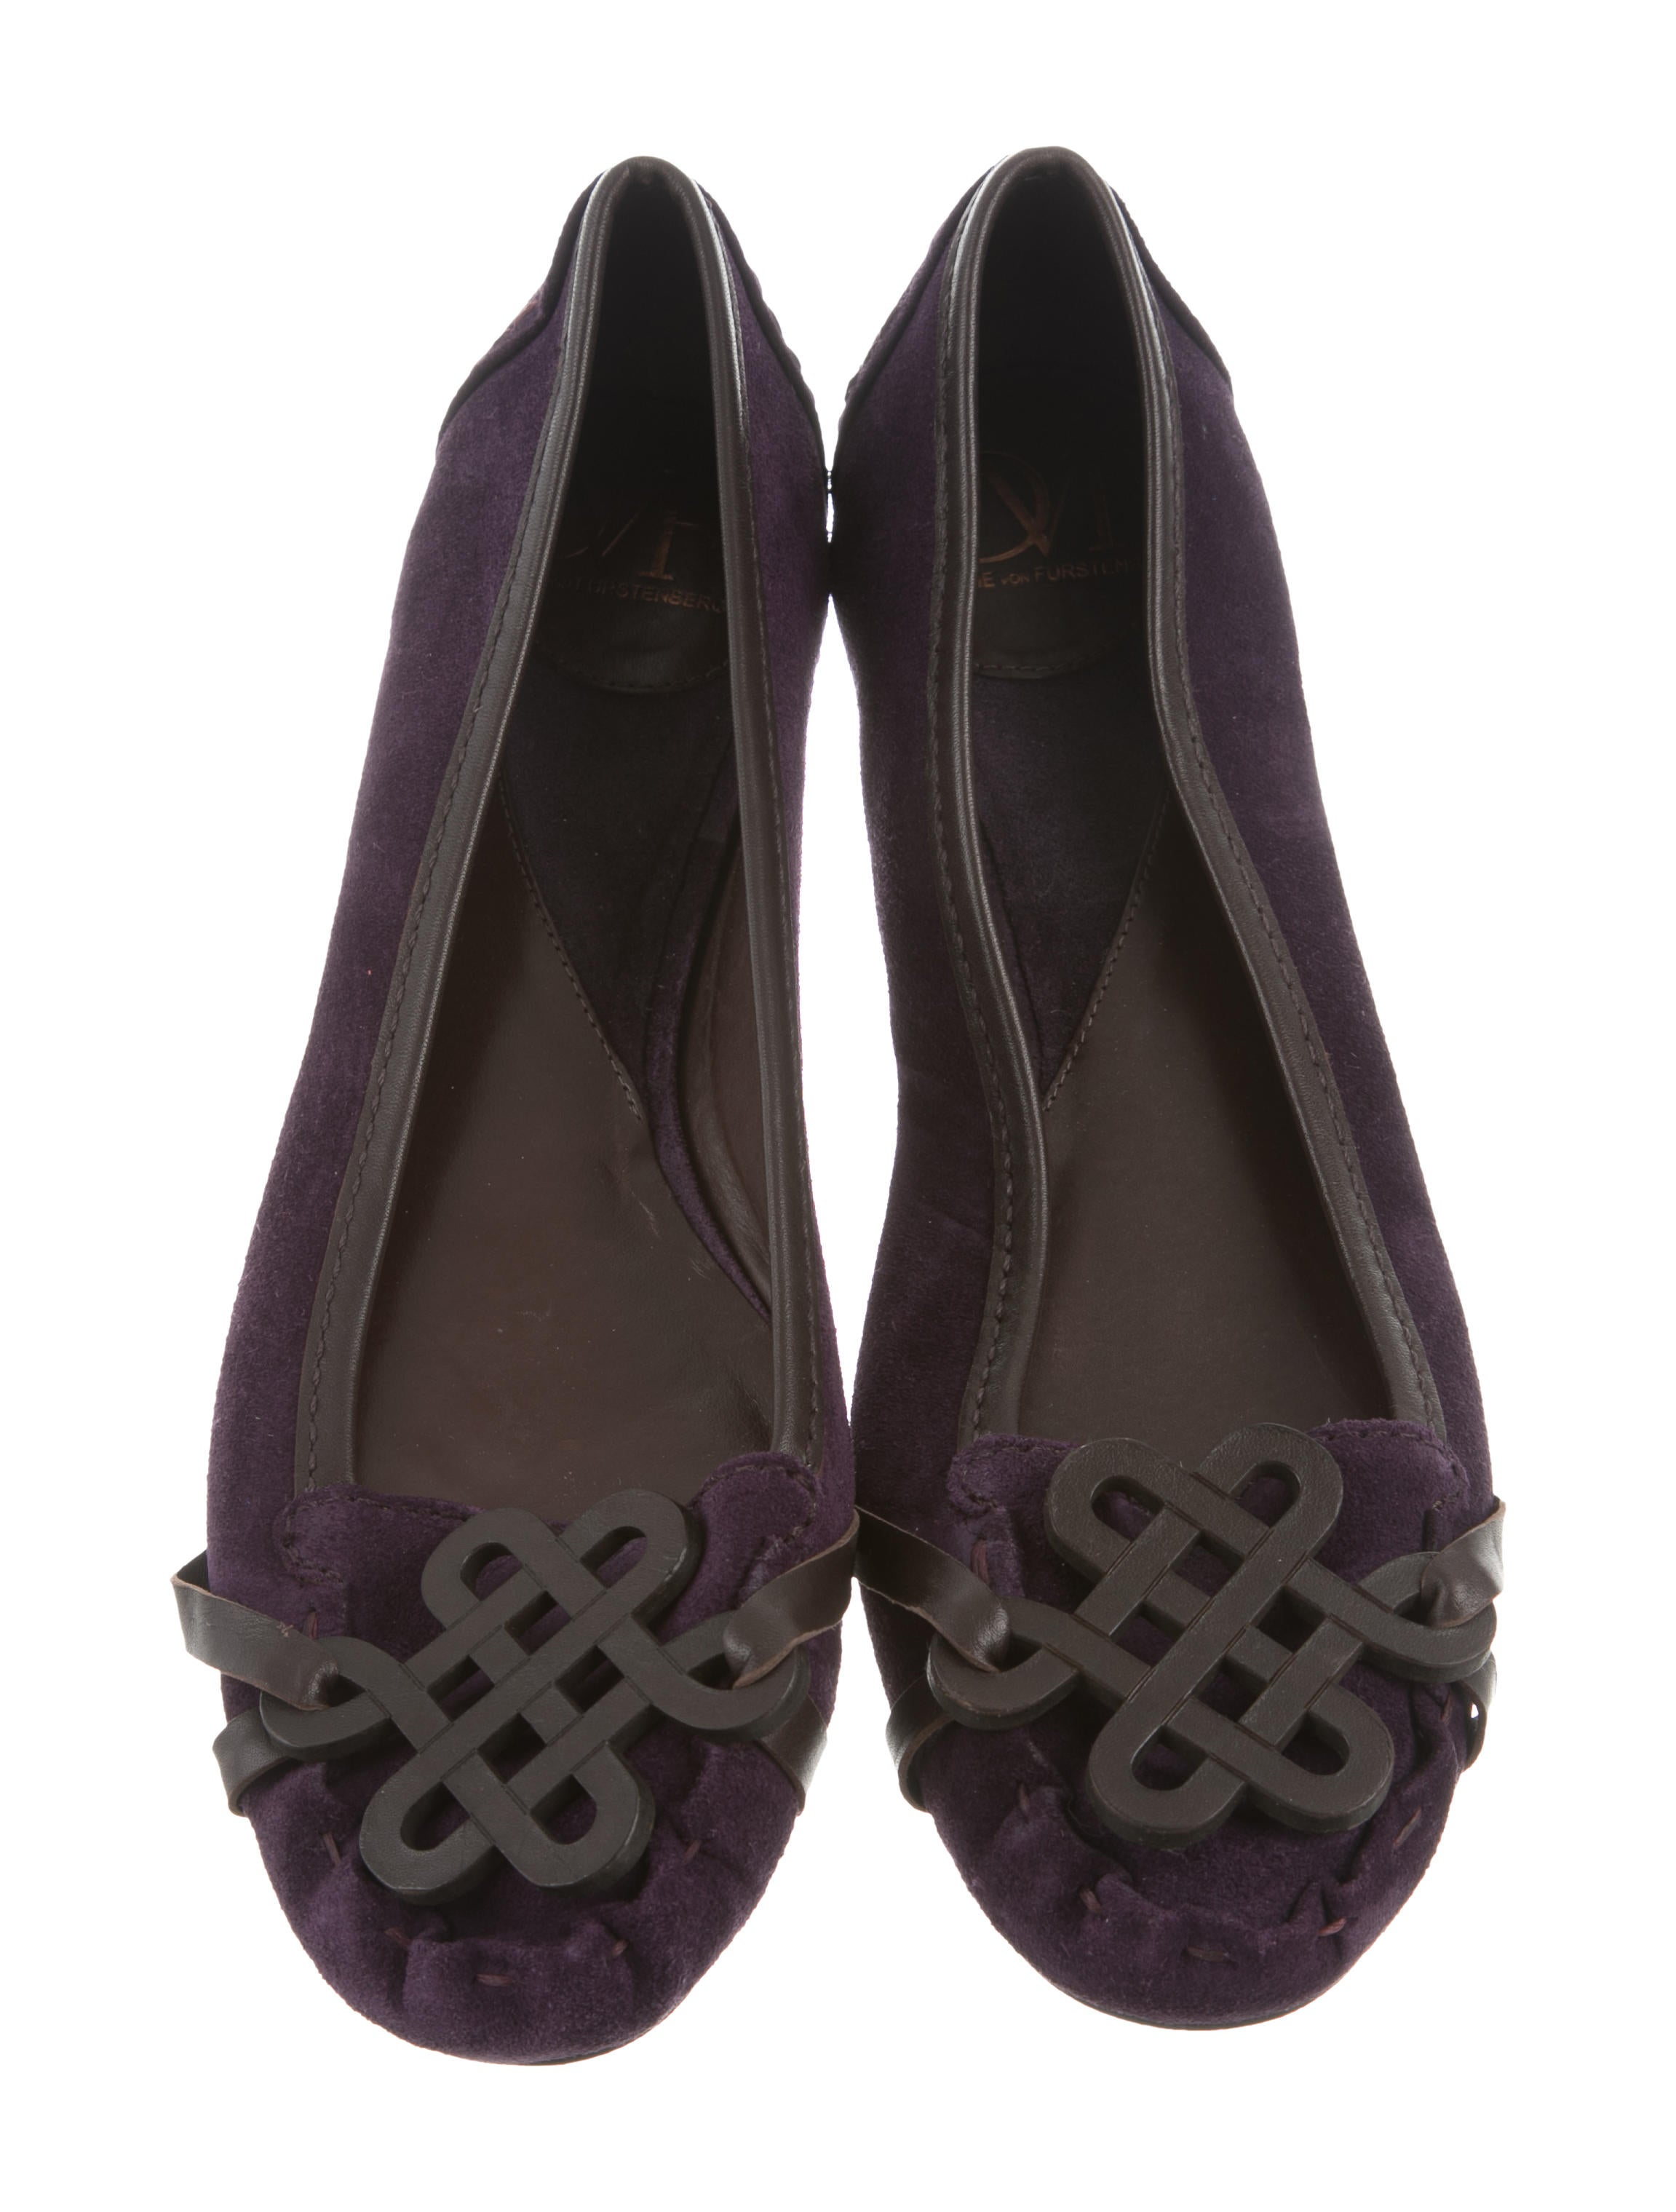 limited edition for sale 100% guaranteed sale online Diane von Furstenberg Suede Round-Toe Flats cheap order cheap new arrival ZPbbZHT